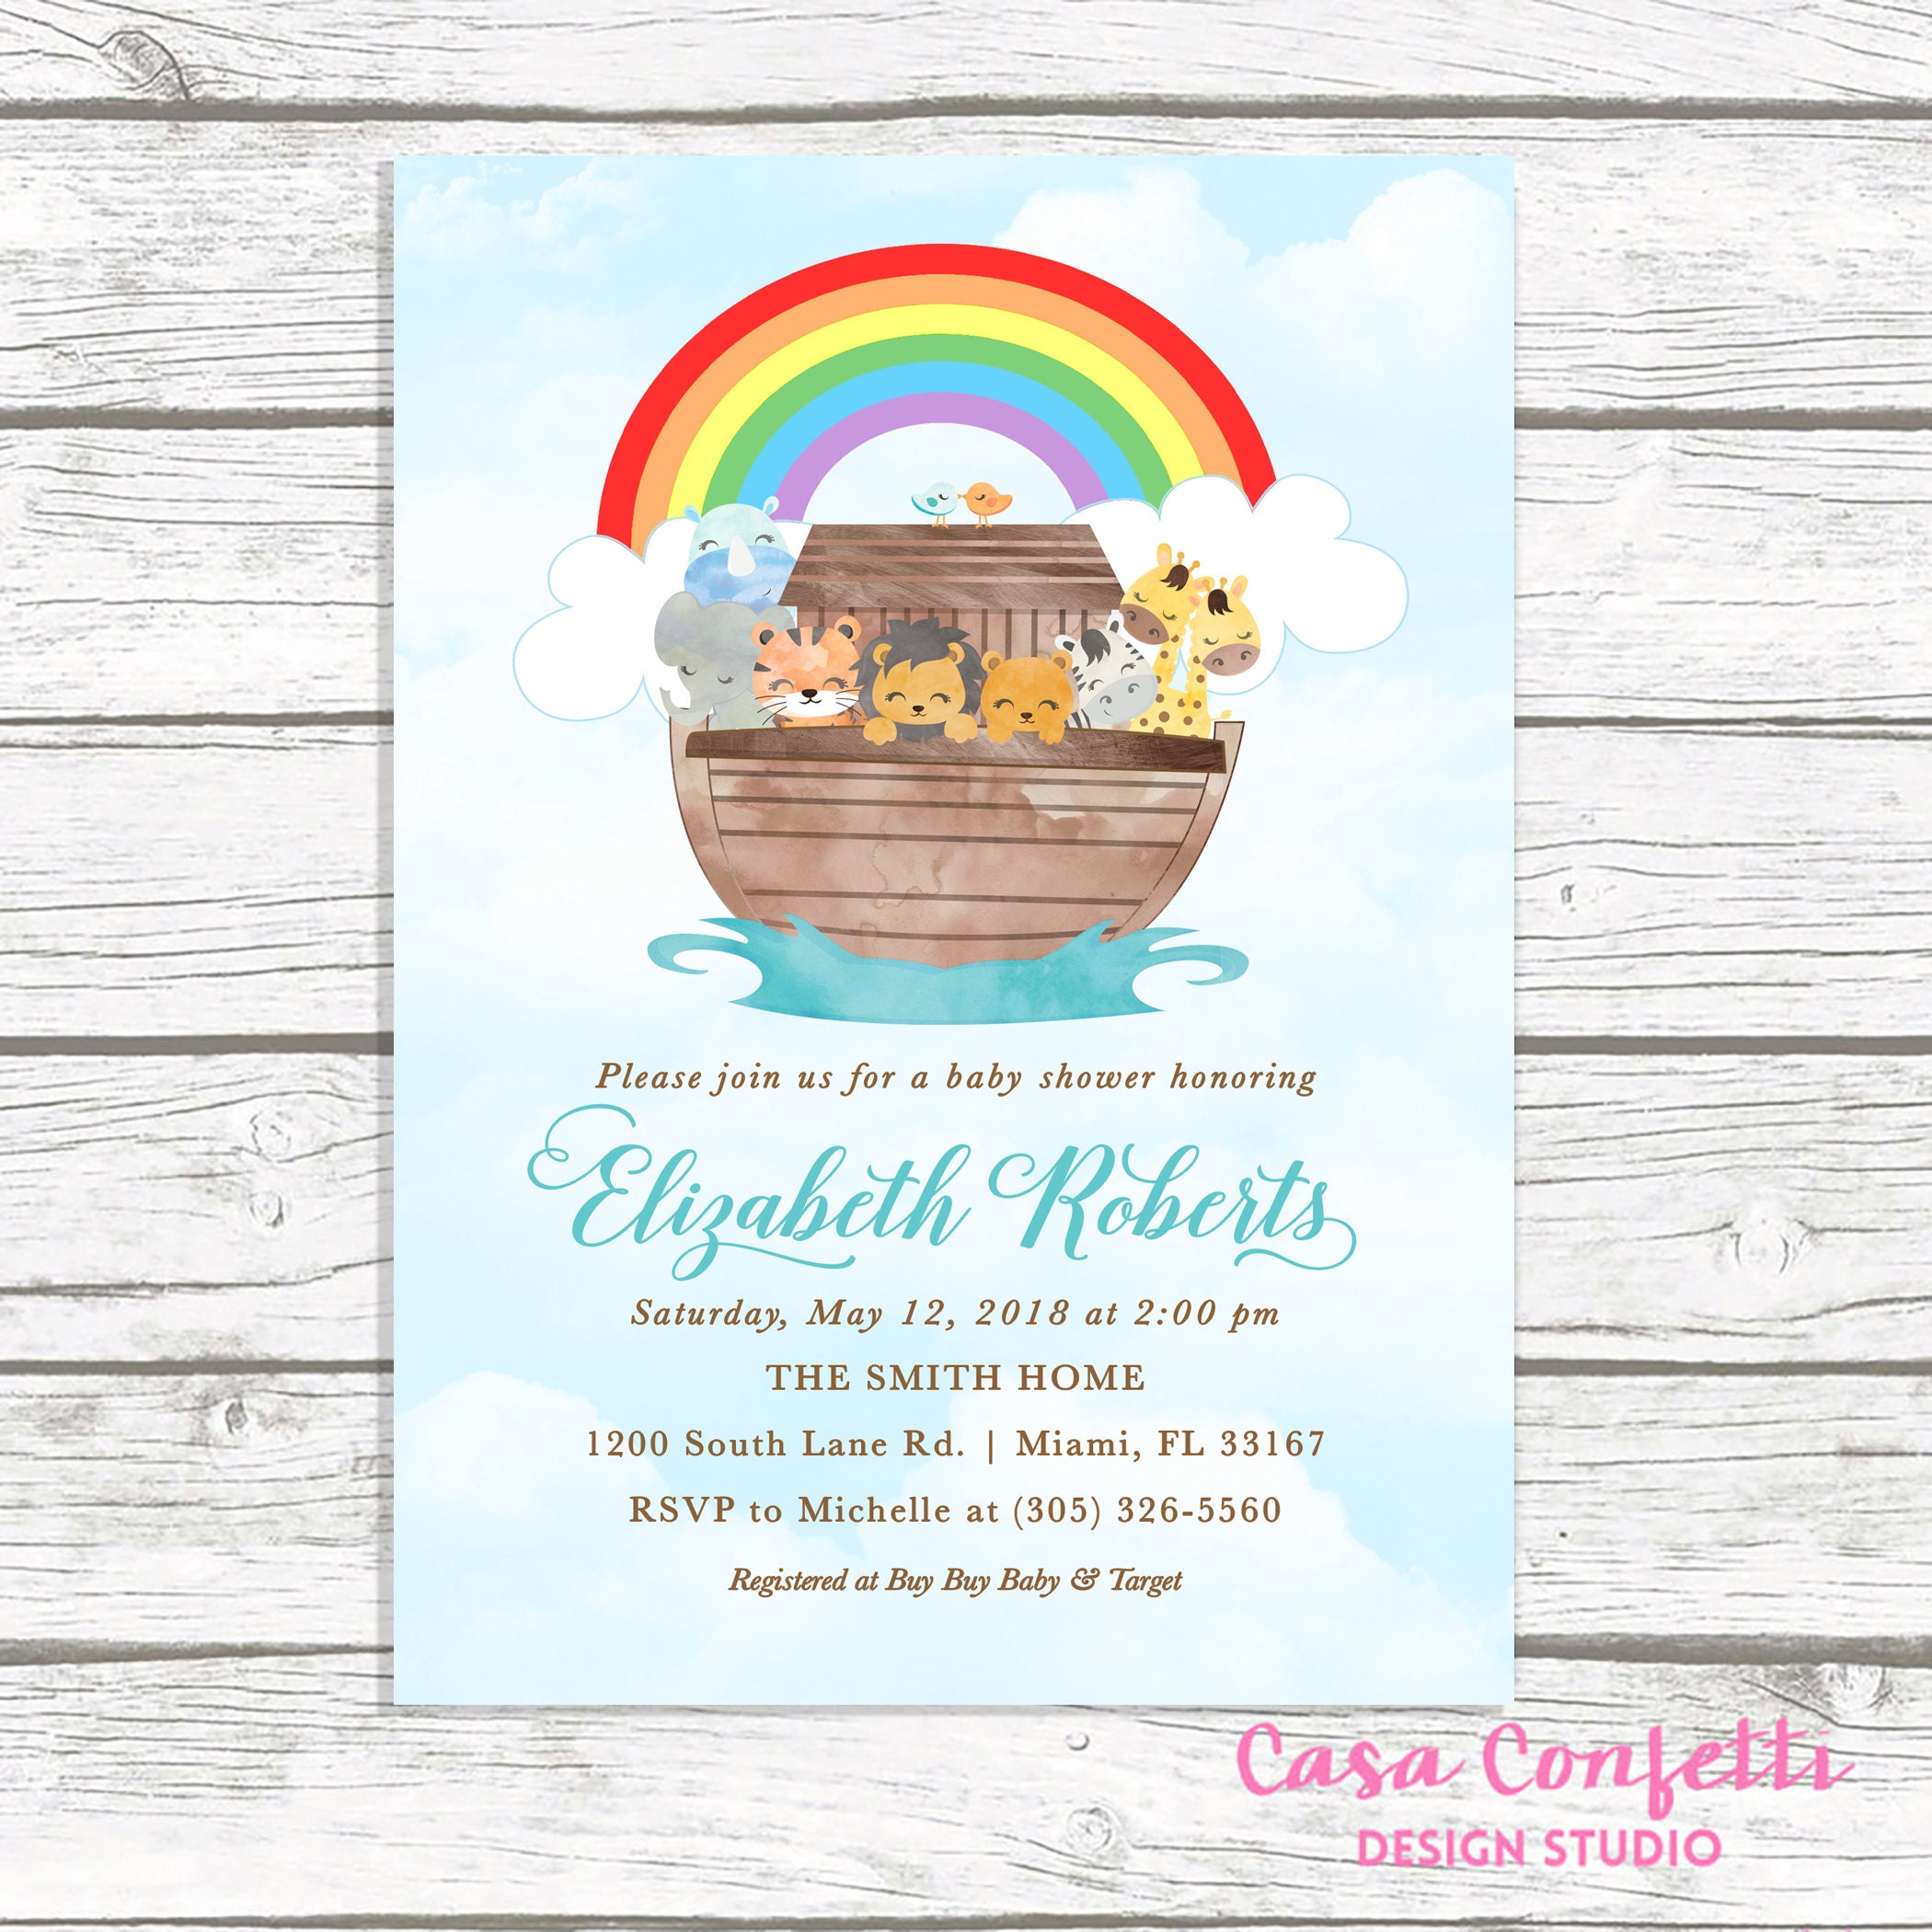 Noahs Ark Baby Shower Invitation Noahs Ark Invitation Baby